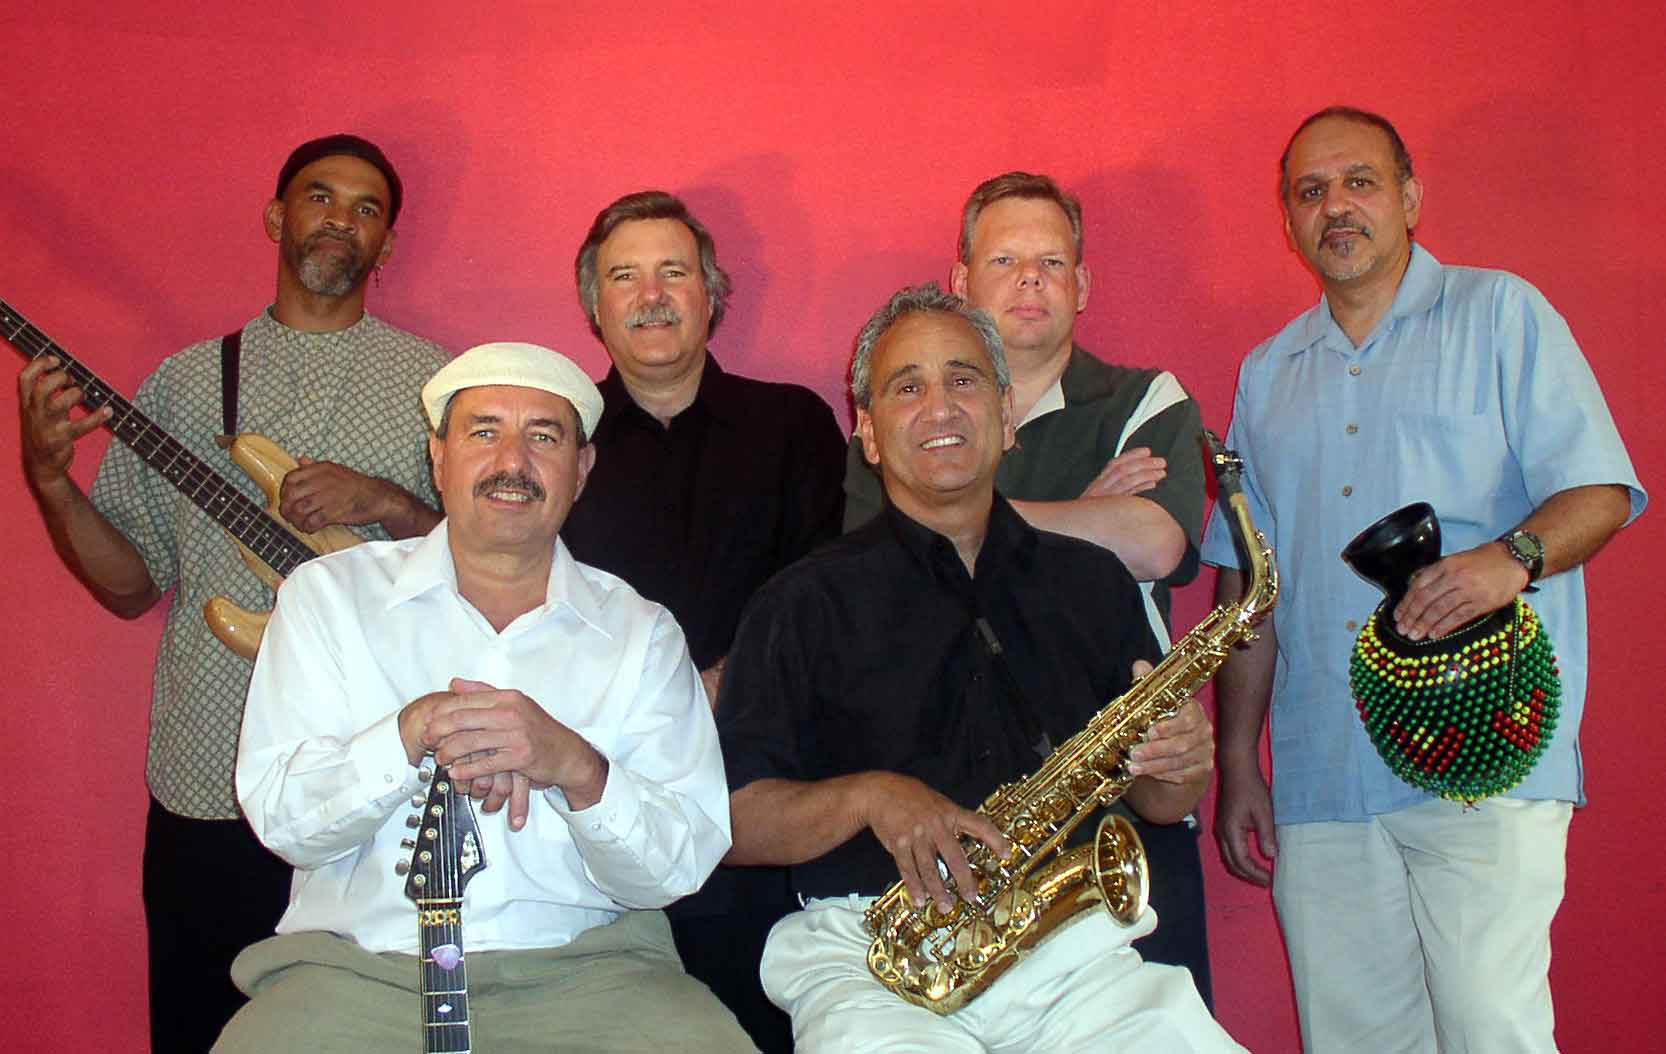 Airborne Jazz Blog - Contemporary Jazz - Latin Jazz - Smooth Jazz - World Music